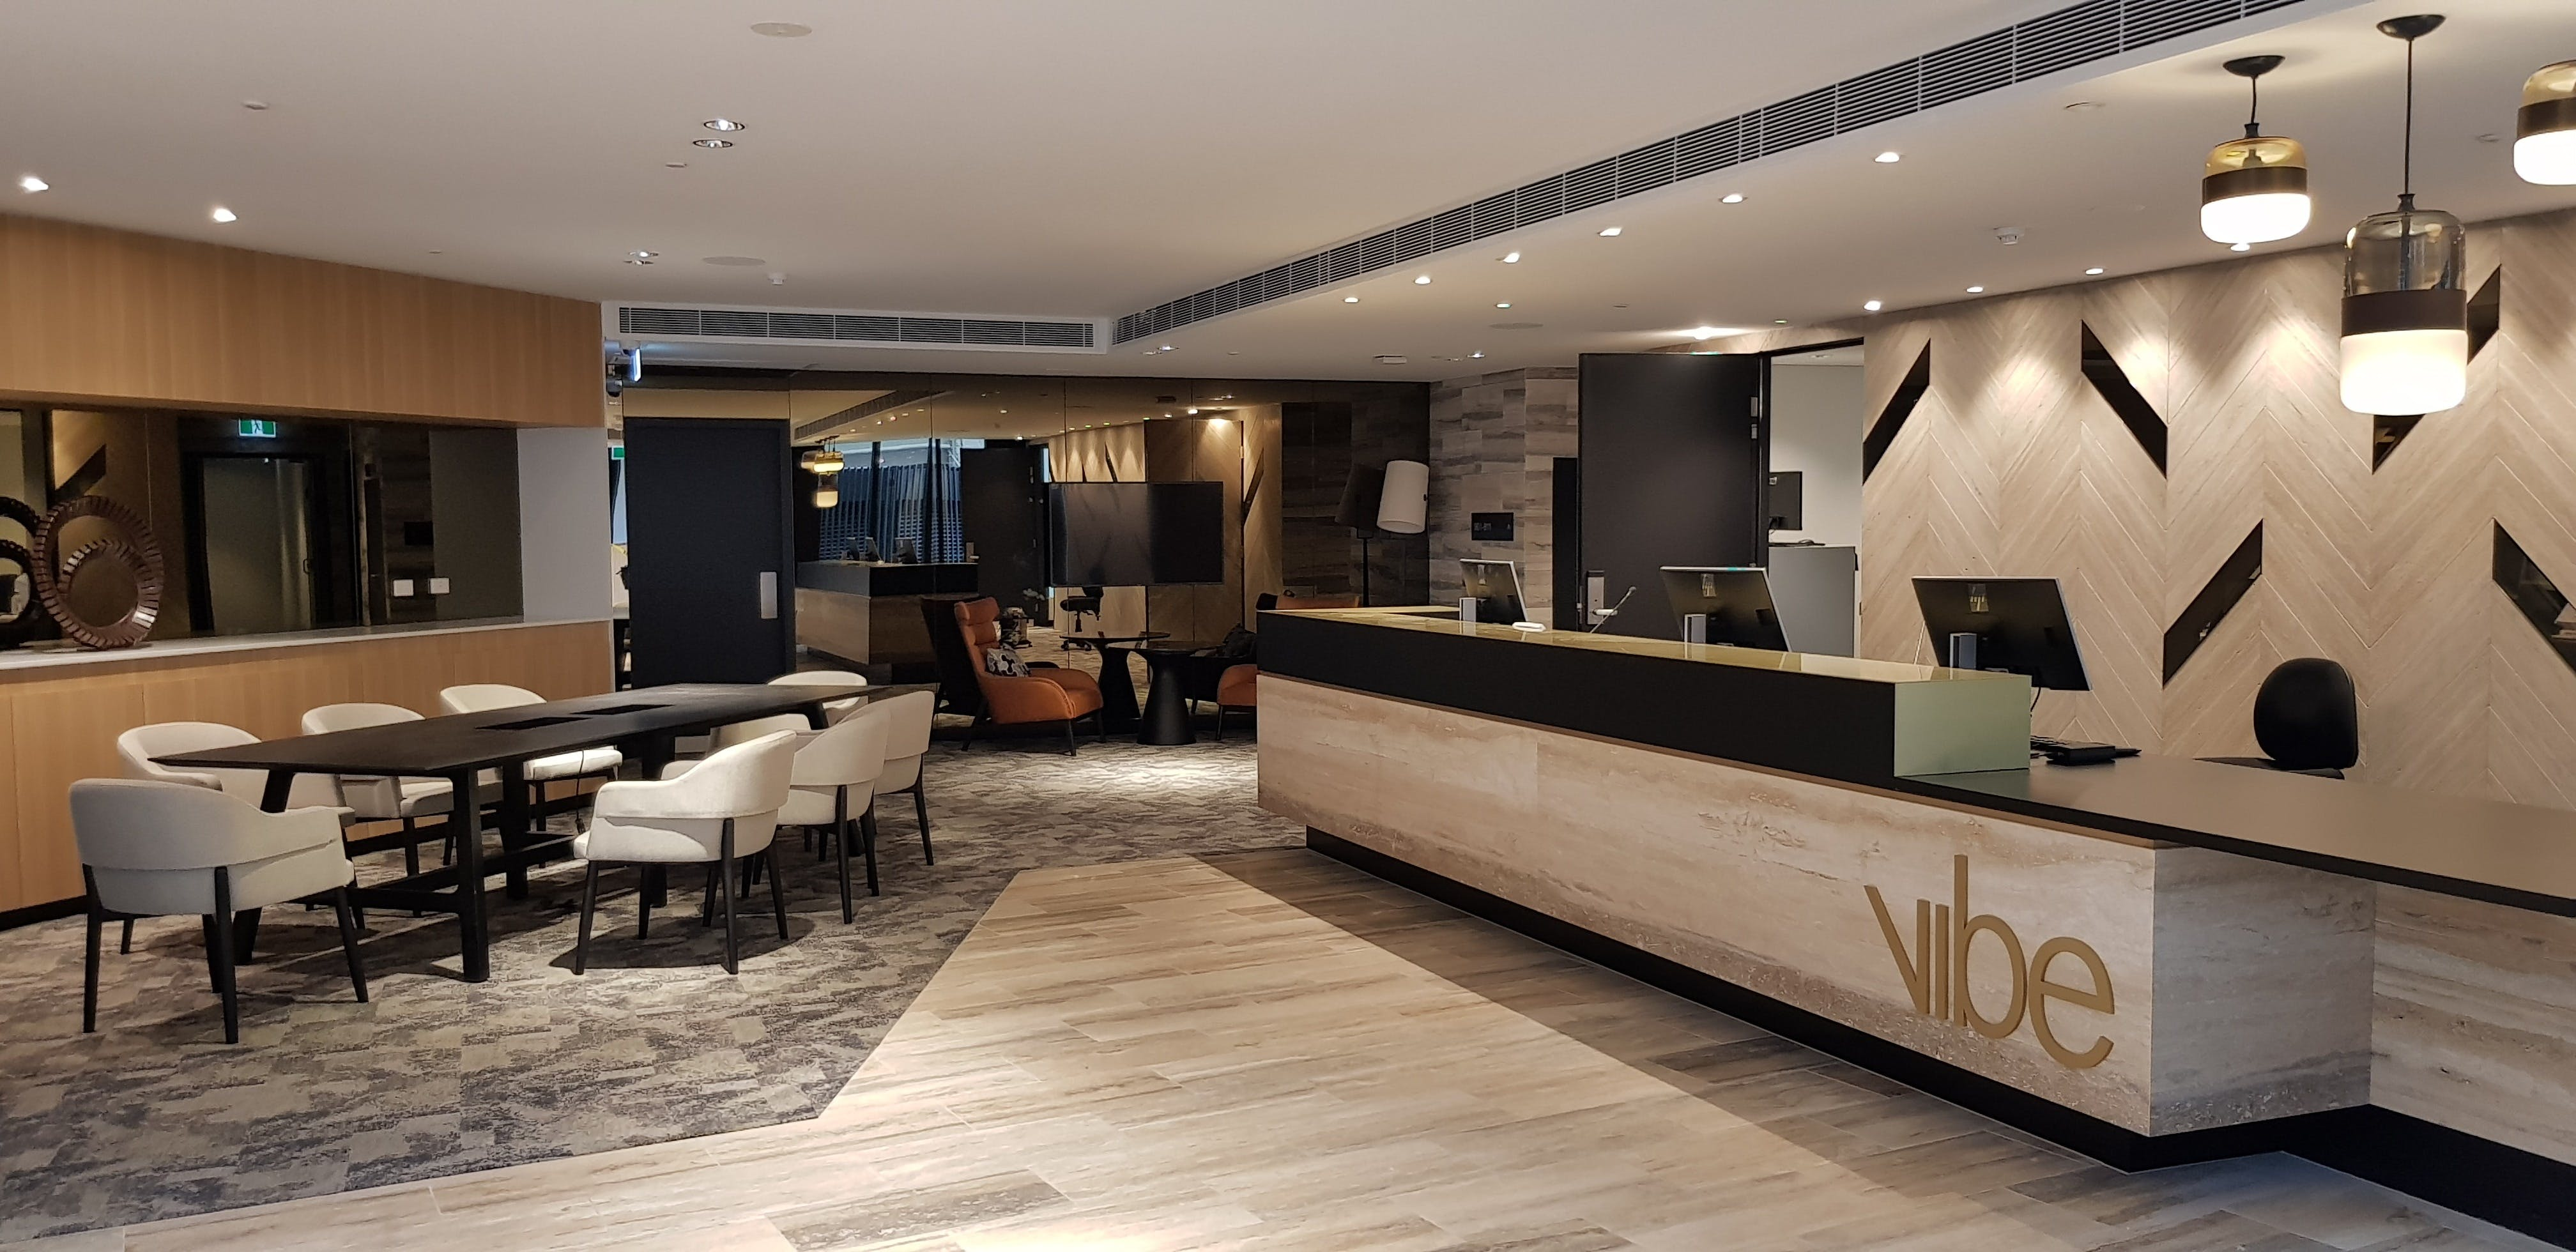 Vibe Hotel North Sydney - Accommodation Ballina